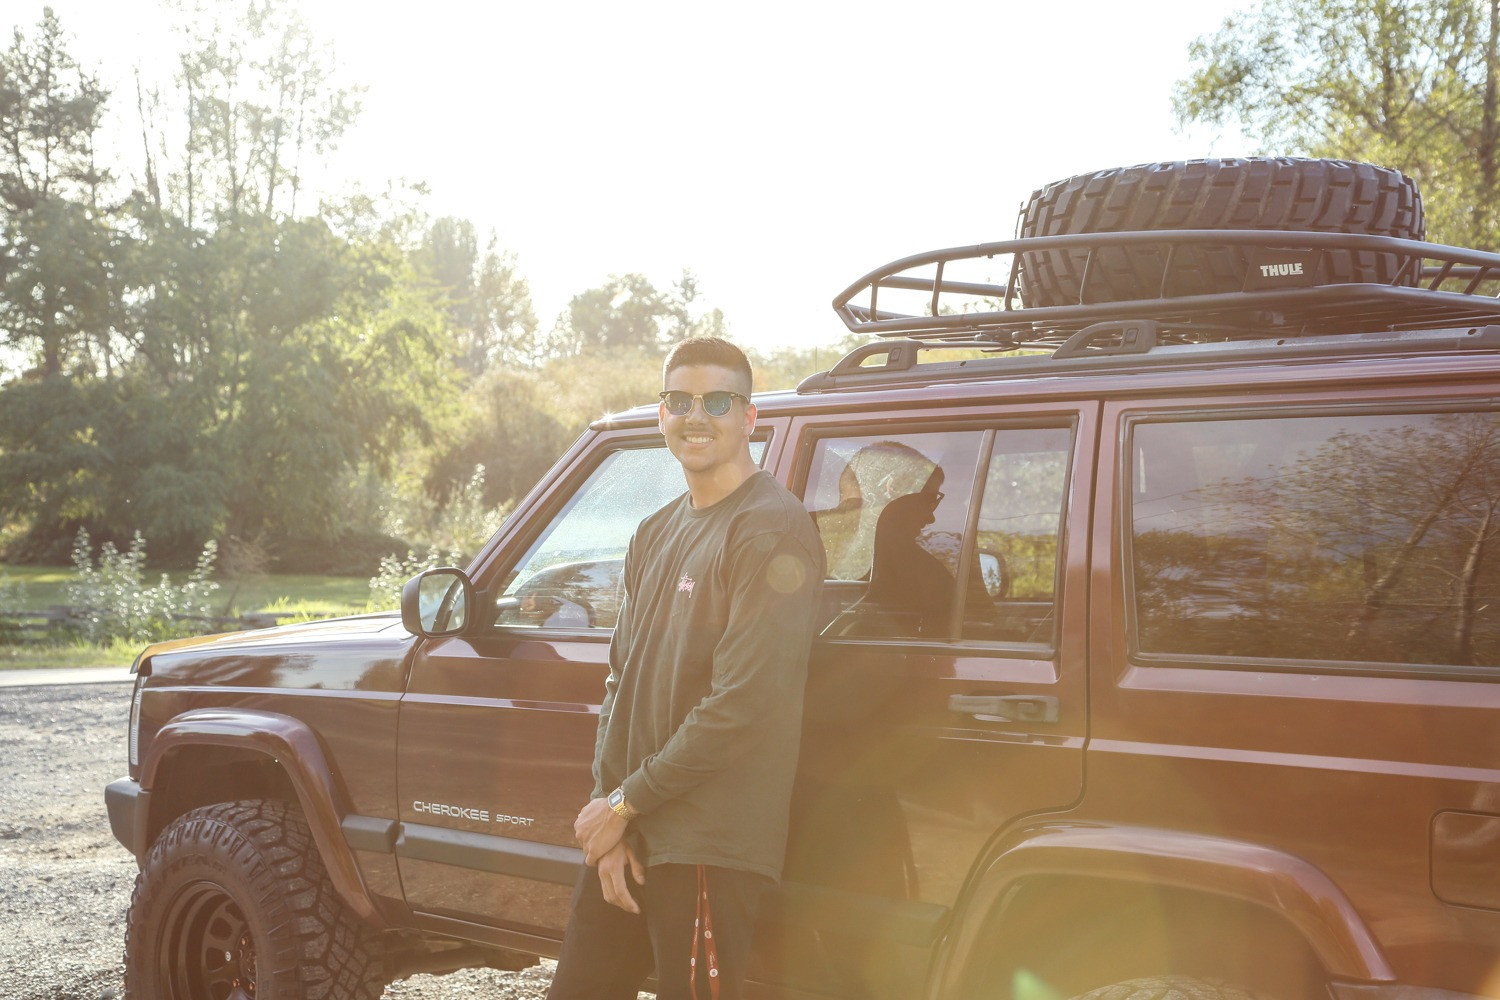 Lifestyle vehicle Jeep photography by Samantha Voros Photography Metro Vancouver